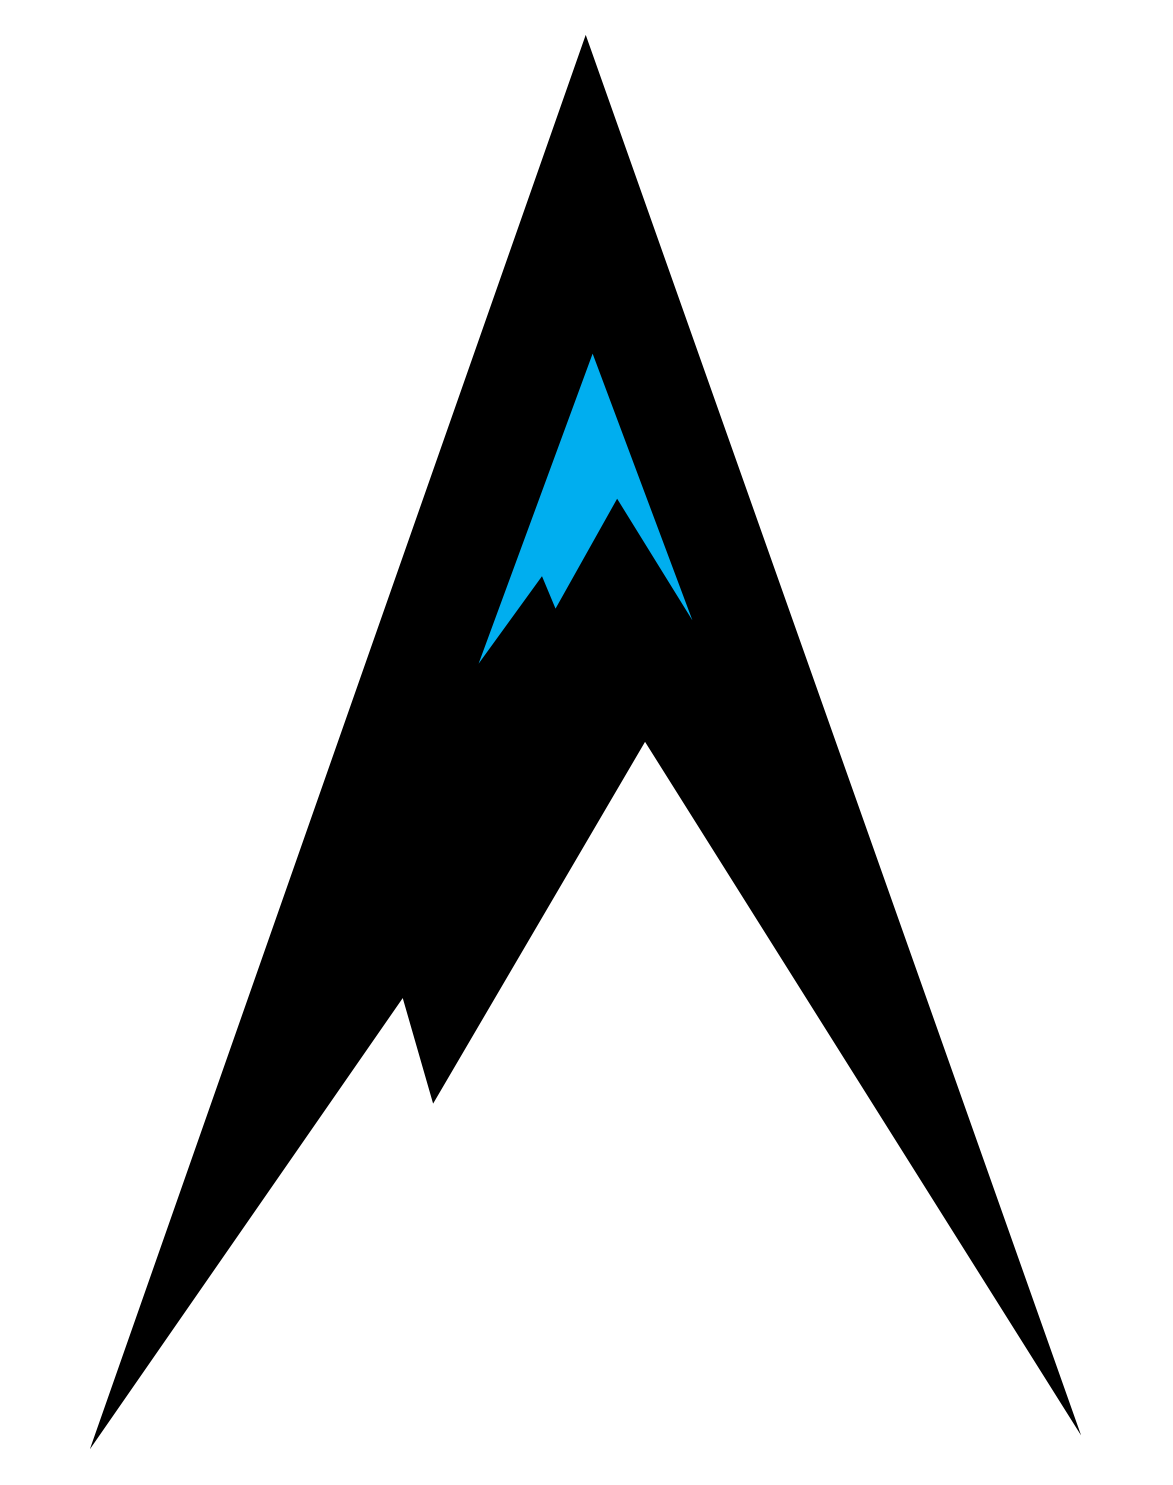 altitude-icon.png